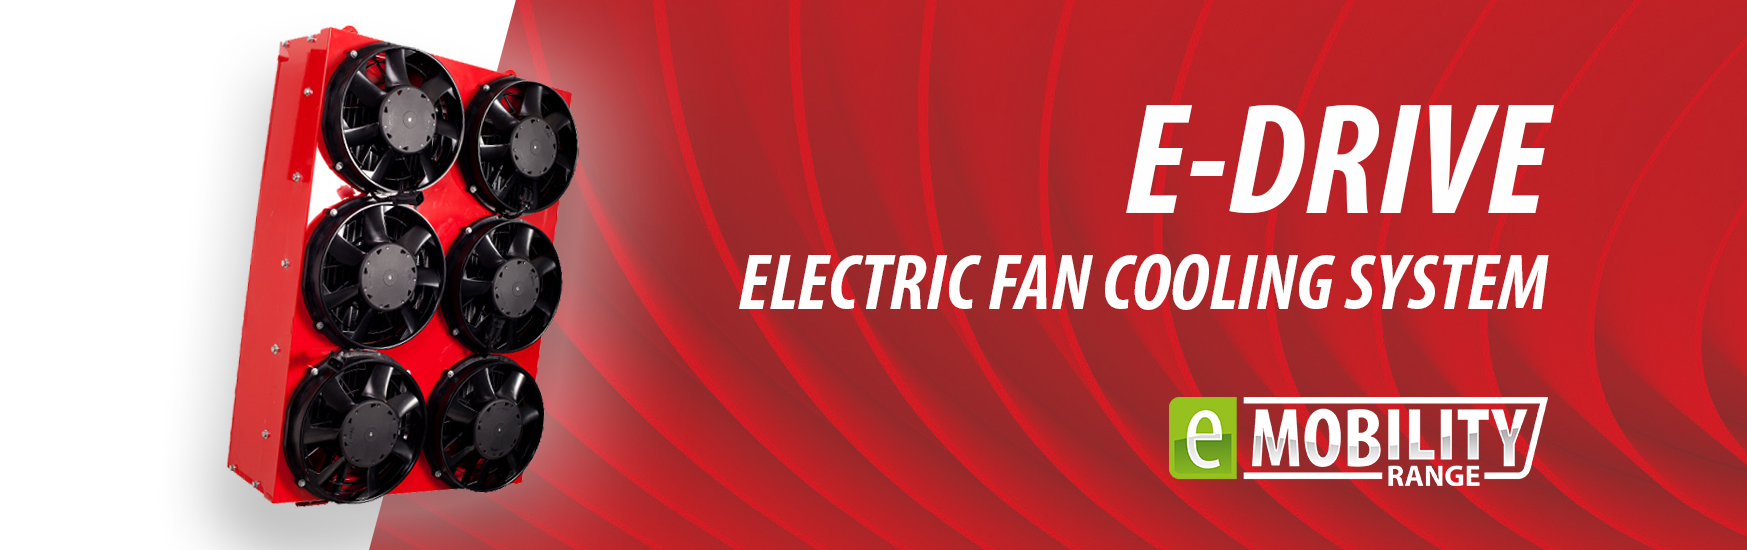 What Is An E Drive Electric Fan Cooling System